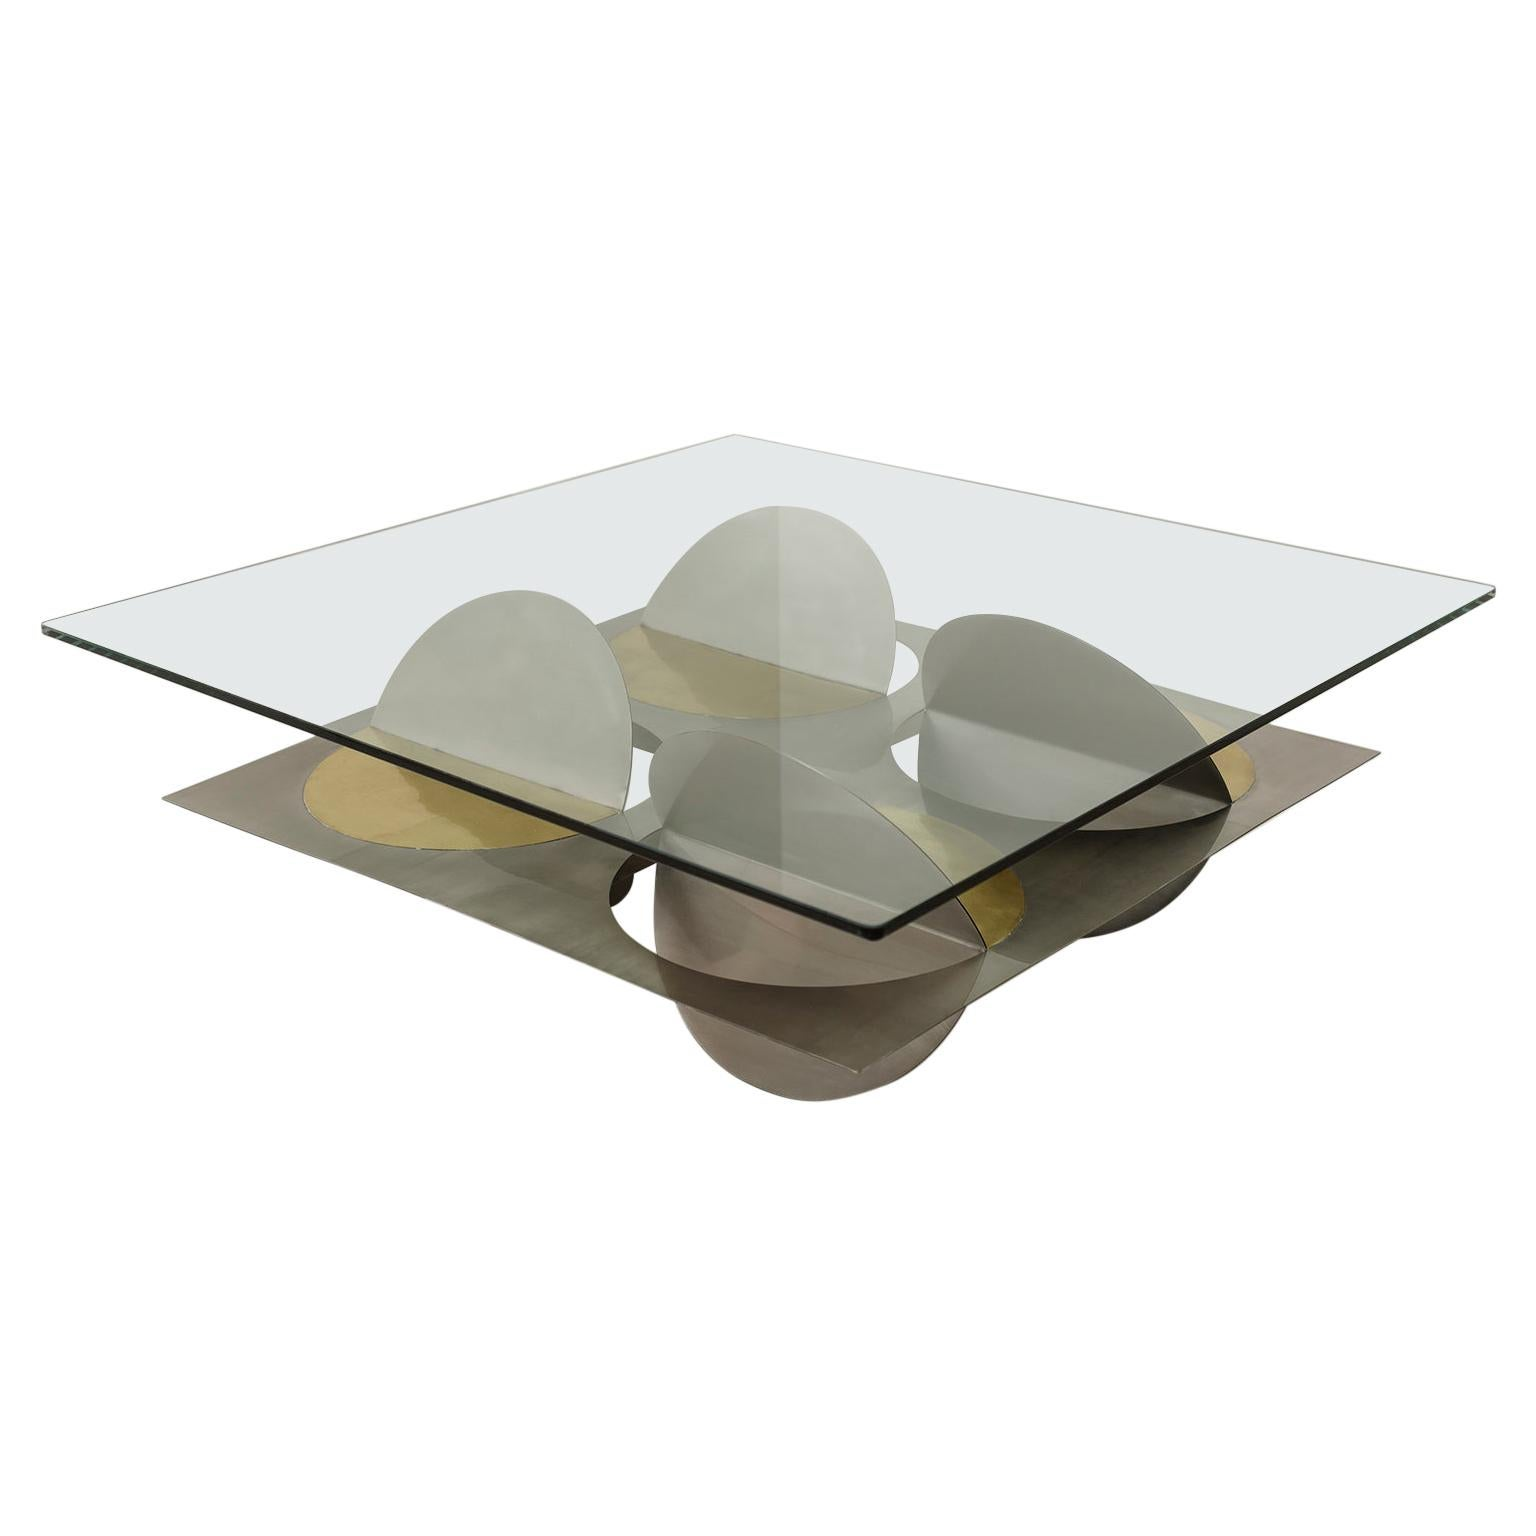 Geometric Coffee Table Metal Stainless Steel Brass Glass on top by Ana Volante